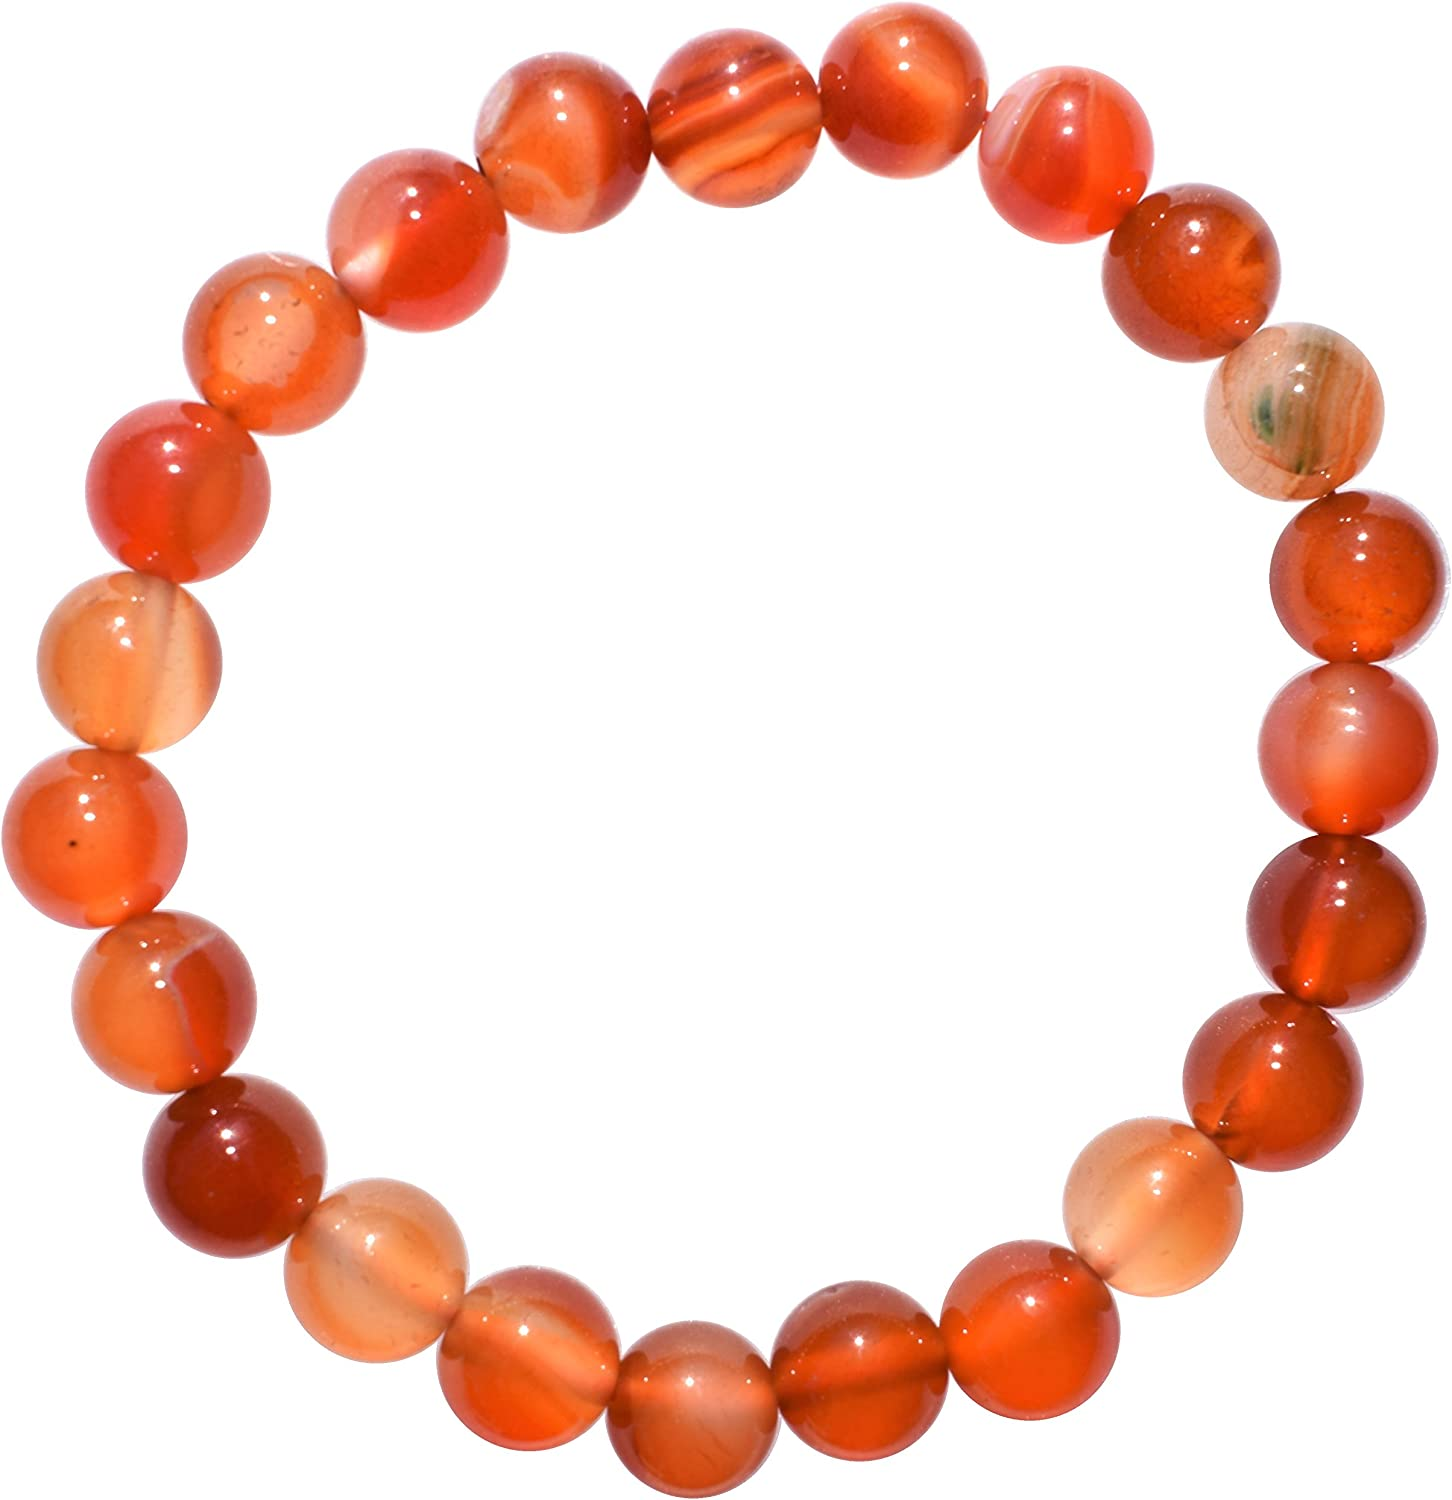 Zenergy Gems Charged Natural Premium Carnelian Agate 8mm Bead Stretchy Bracelet + Selenite Heart Charging Crystal Included